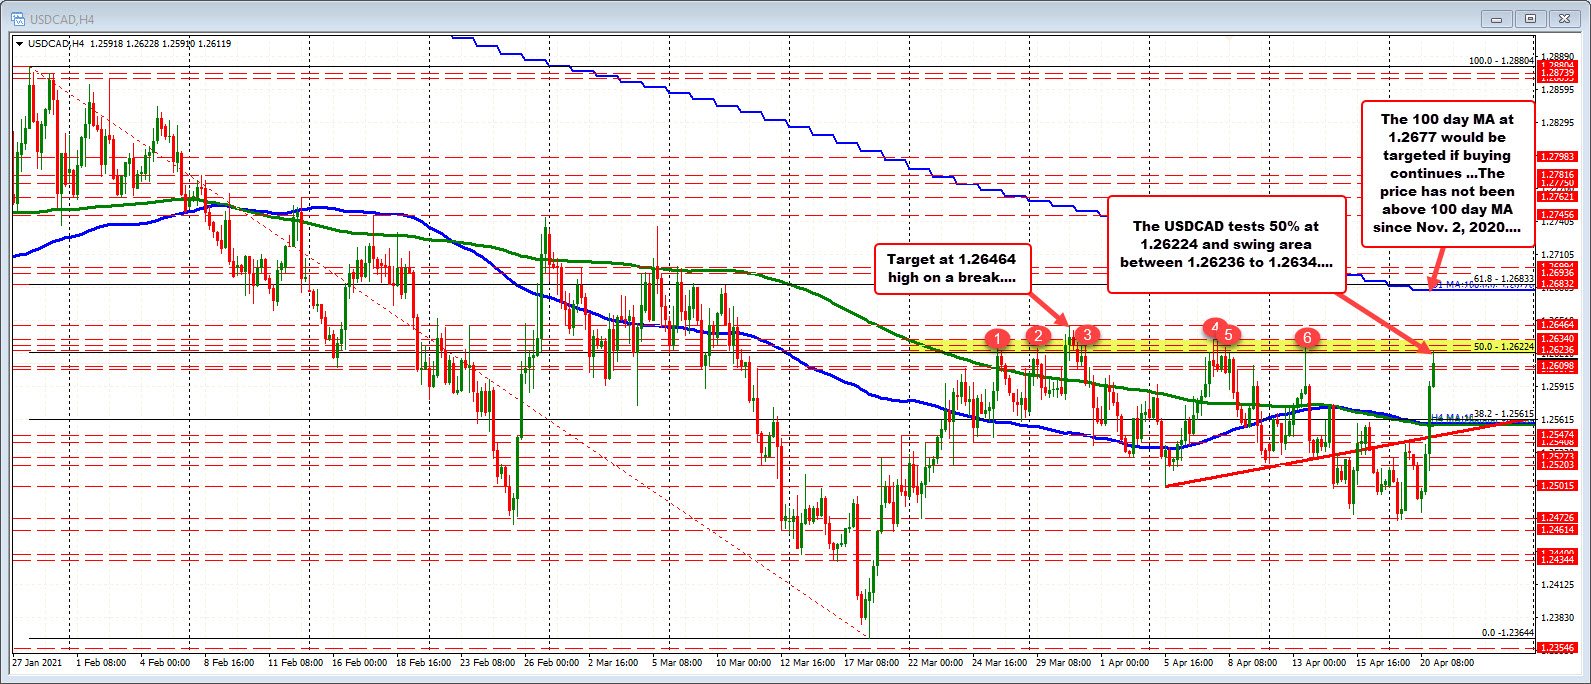 Tests 50% retracement and swing area